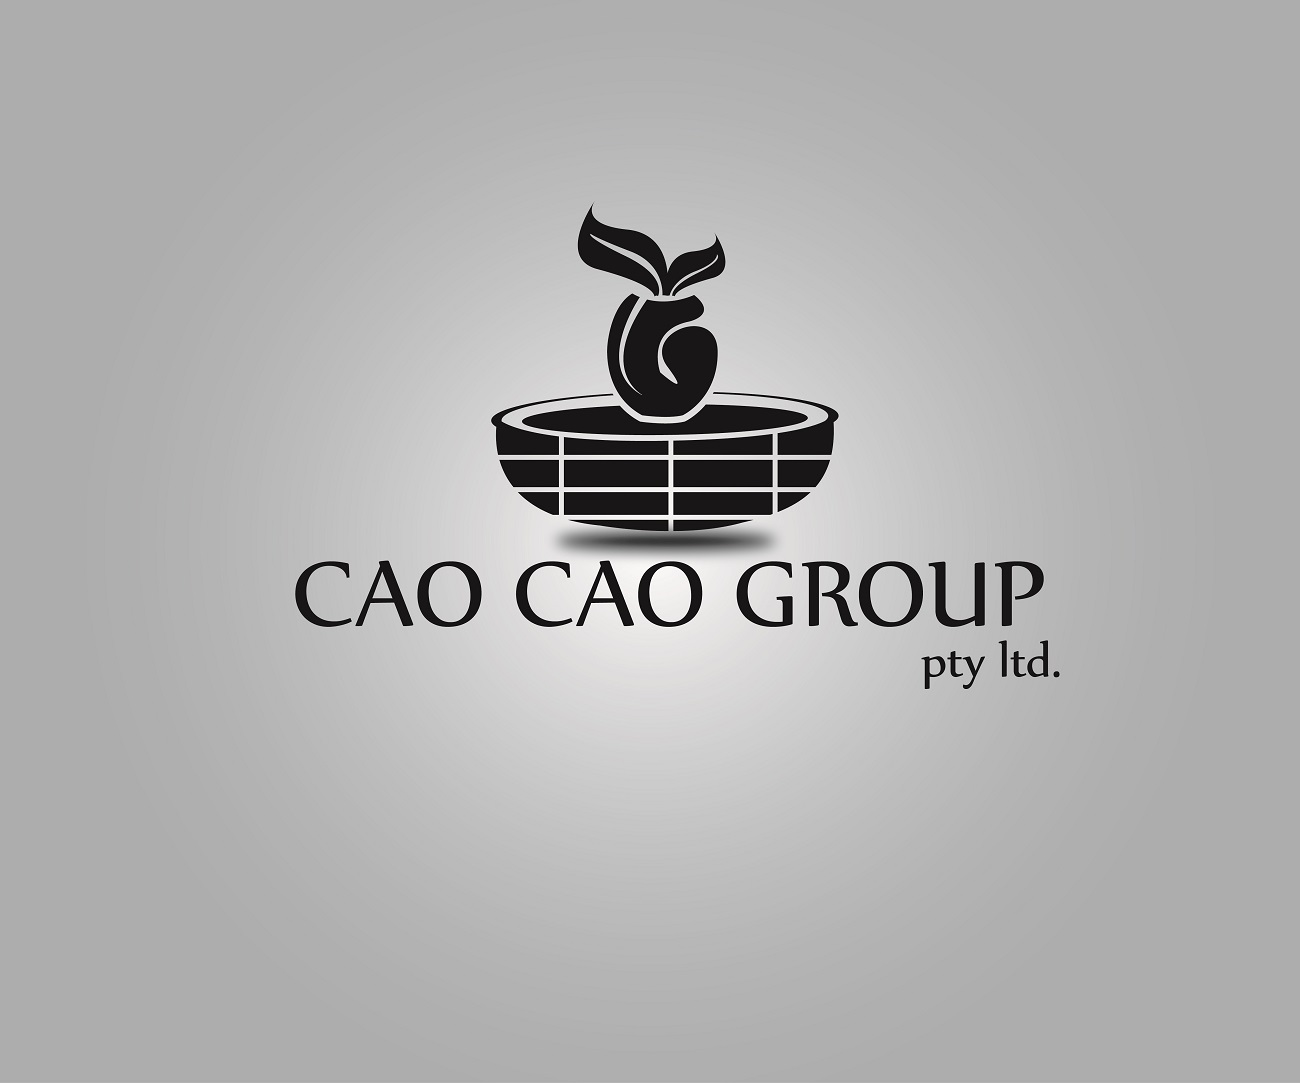 Logo Design by jhunzkie24 - Entry No. 62 in the Logo Design Contest cao cao group pty ltd Logo Design.